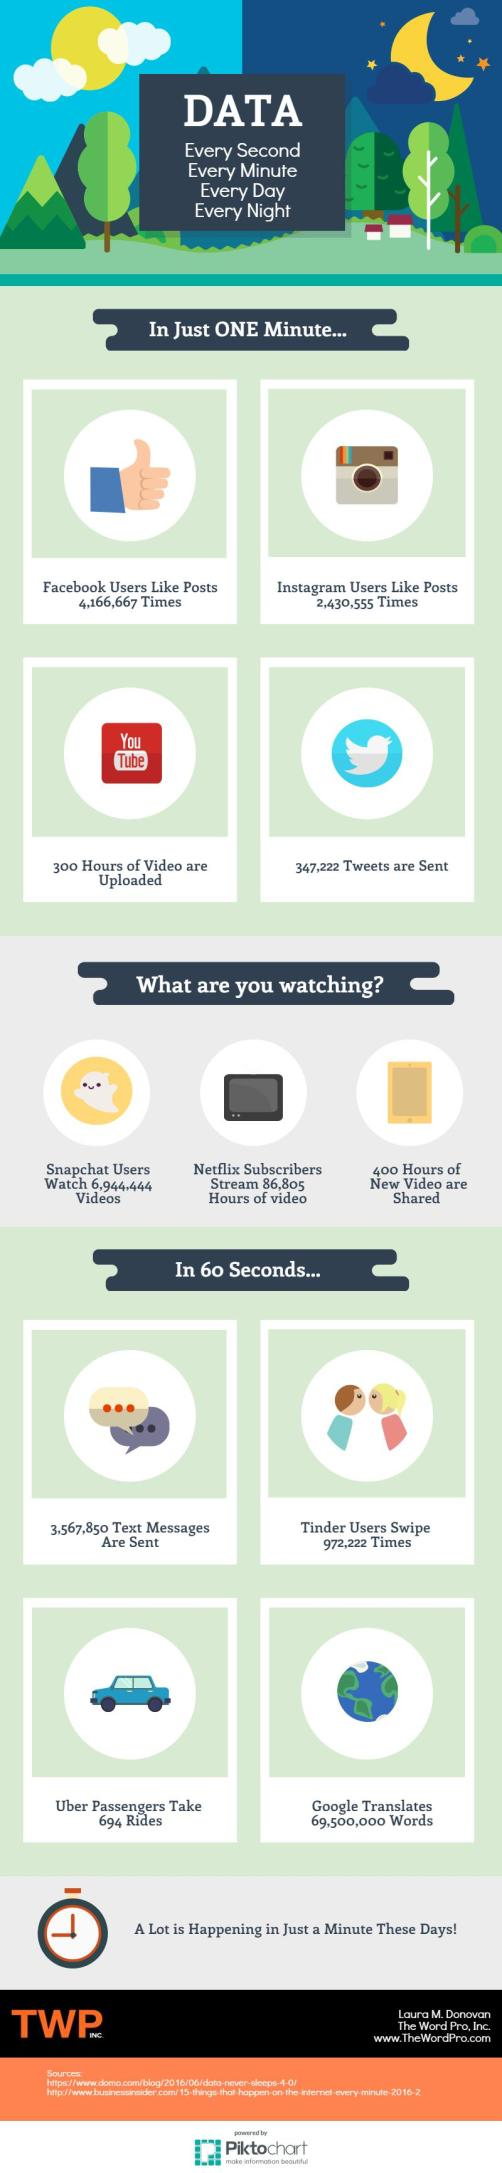 infographic_internet_minute